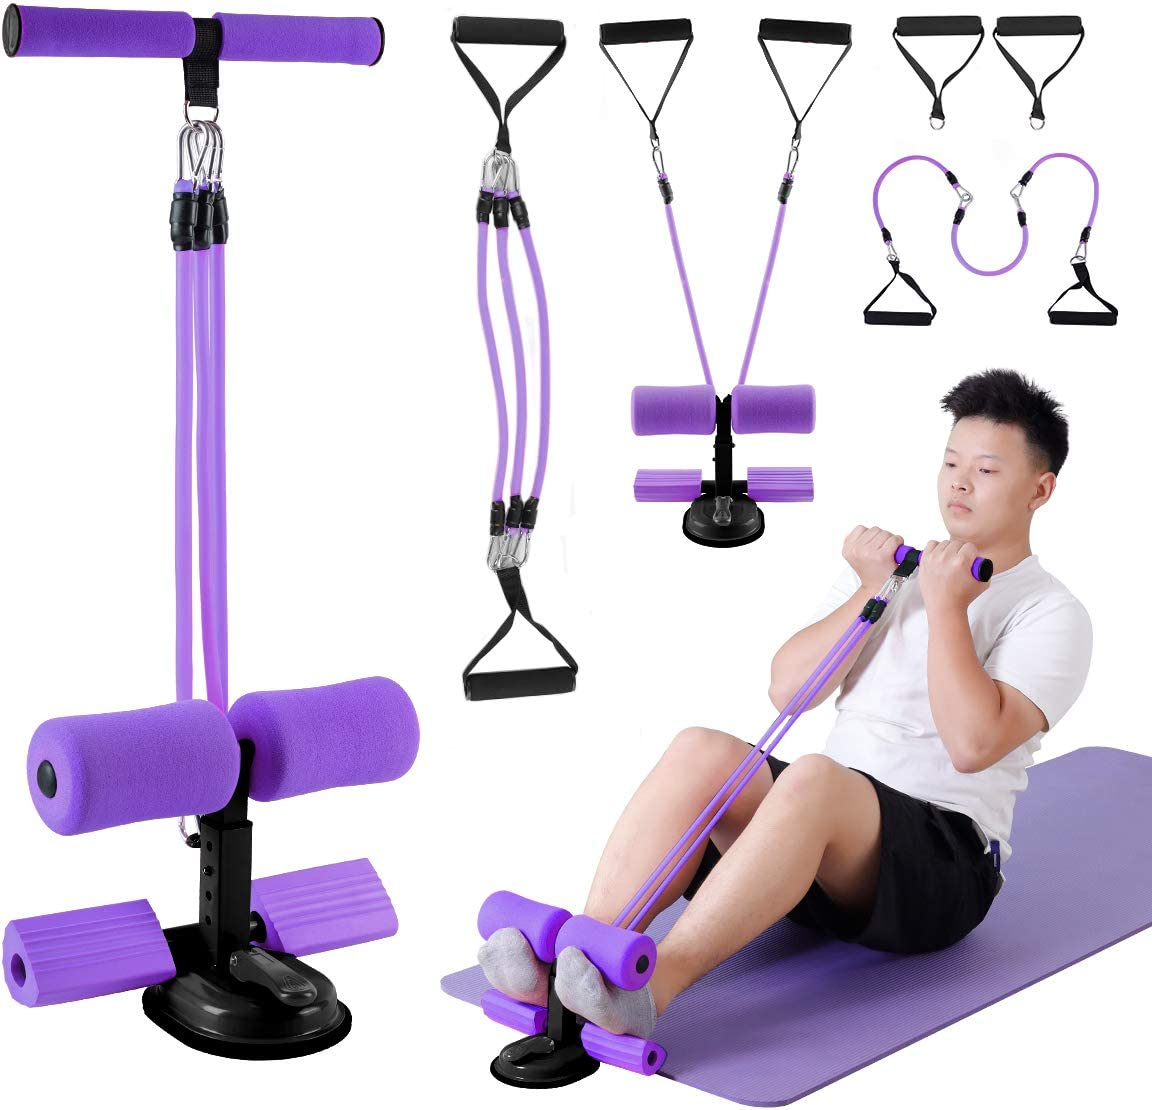 genrice Sit Up Bar for Floor Assistant Chest Workout Yoga Bands at Home Workout Multifunctional Fitness Equipment for Leg Puller//Sit-ups//Arm Stretch//Abdominal Exercise